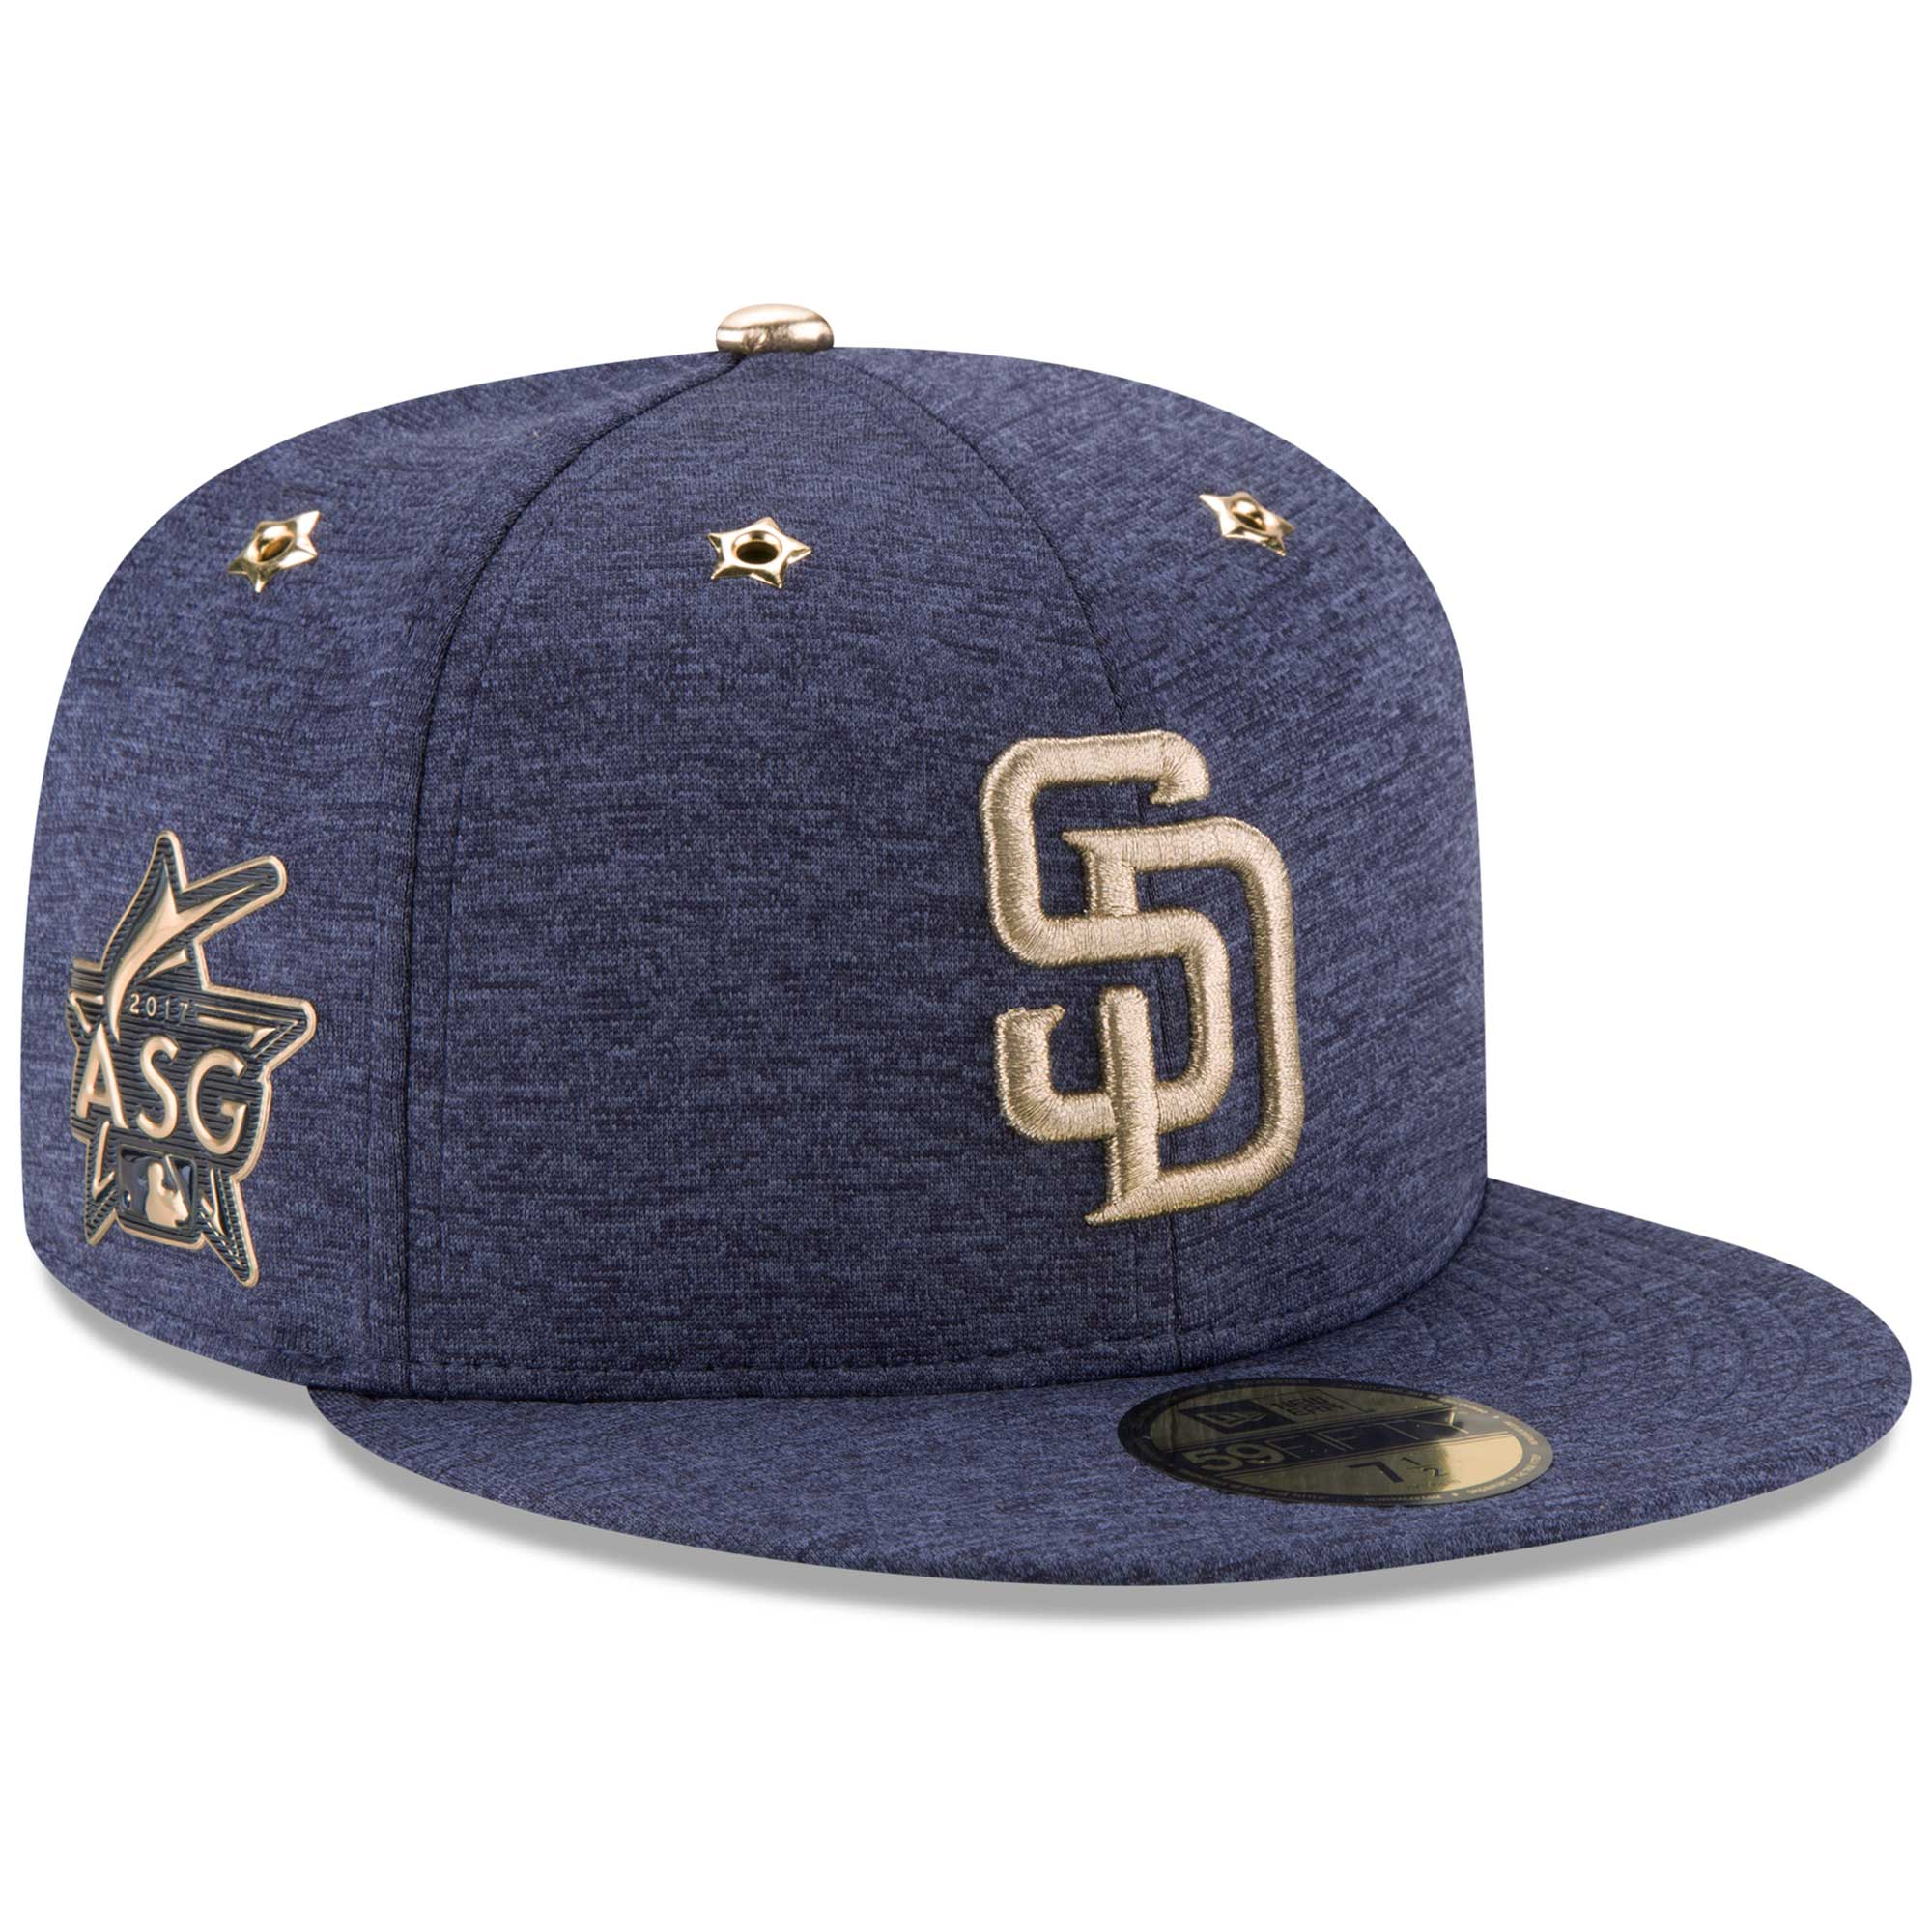 befae5467f9 ... promo code san diego padres new era 2017 mlb all star game side patch  59fifty fitted